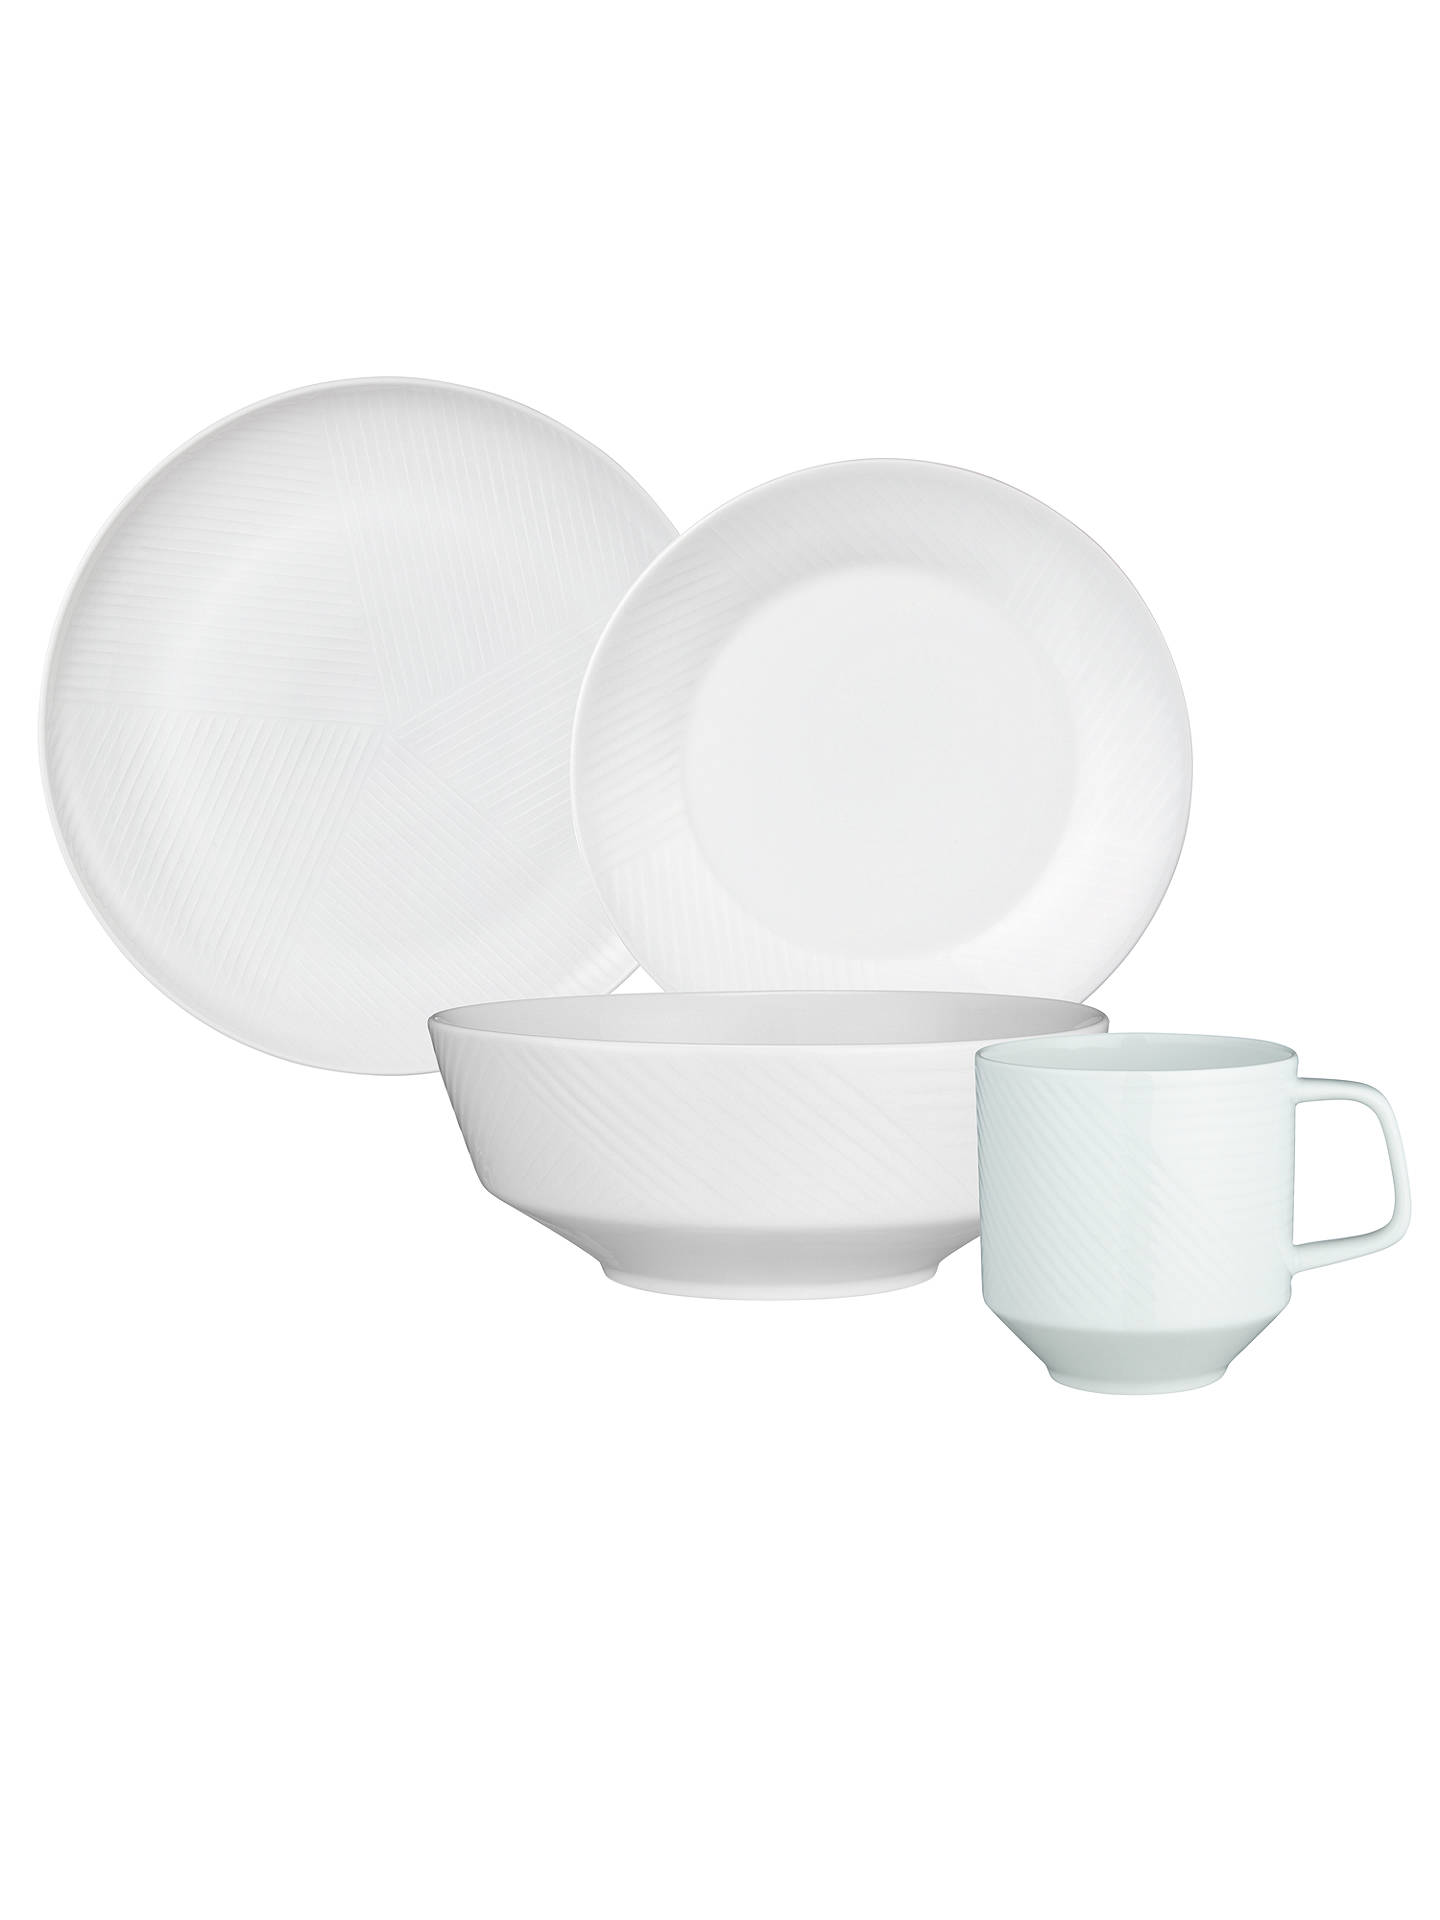 Buy Design Project by John Lewis No.098 Coupe 23cm Plate, White Online at johnlewis.com